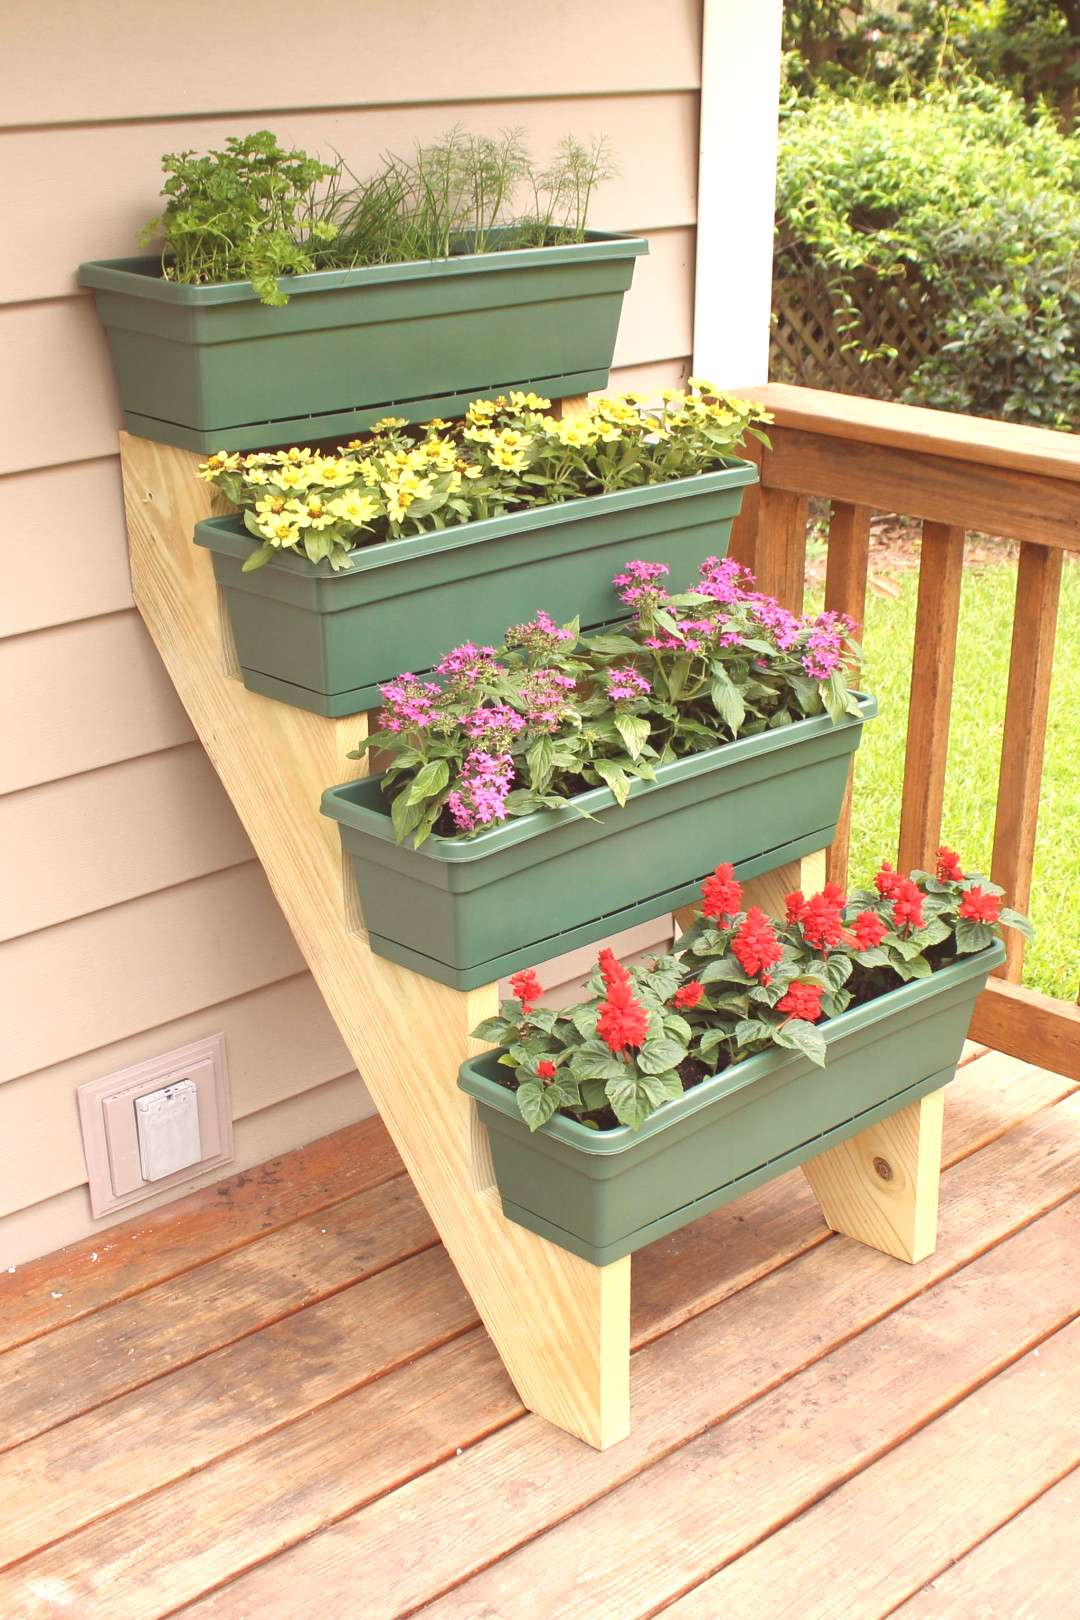 Heres an easy way to add some colorful plants to a small outdoor space by utilizing any vertical a